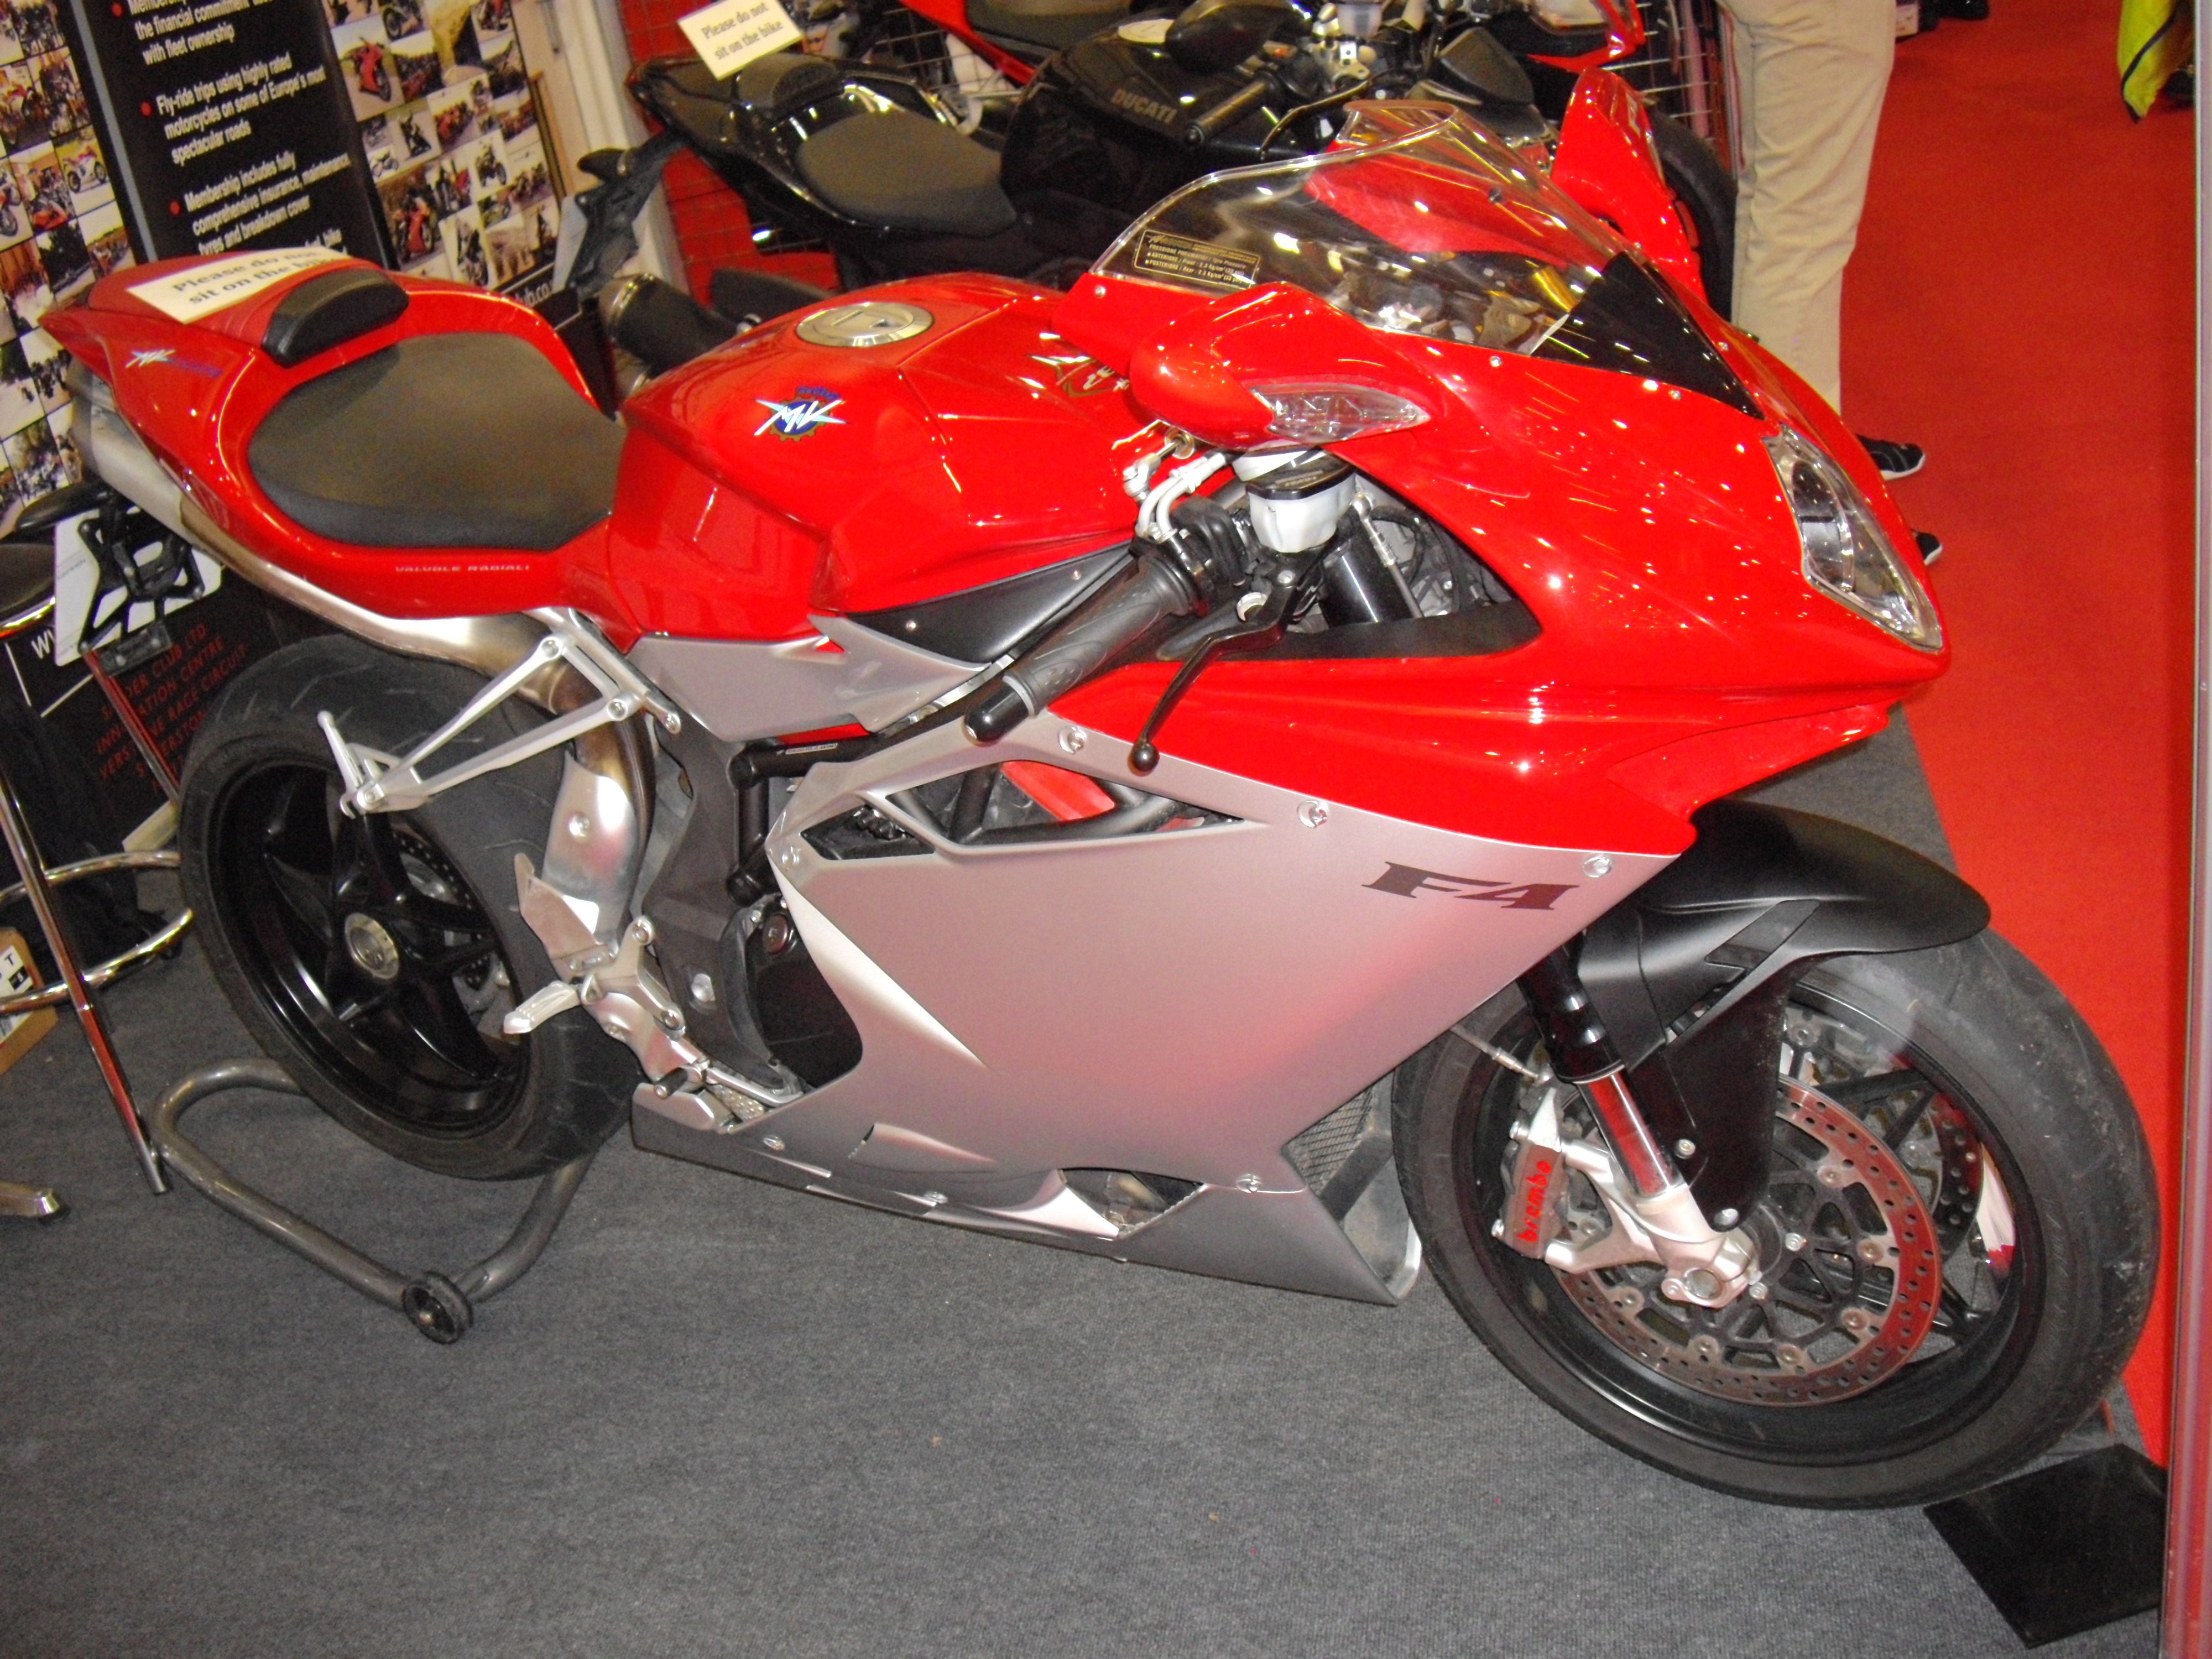 MV Agusta F4 1000 S 2006 images #113601